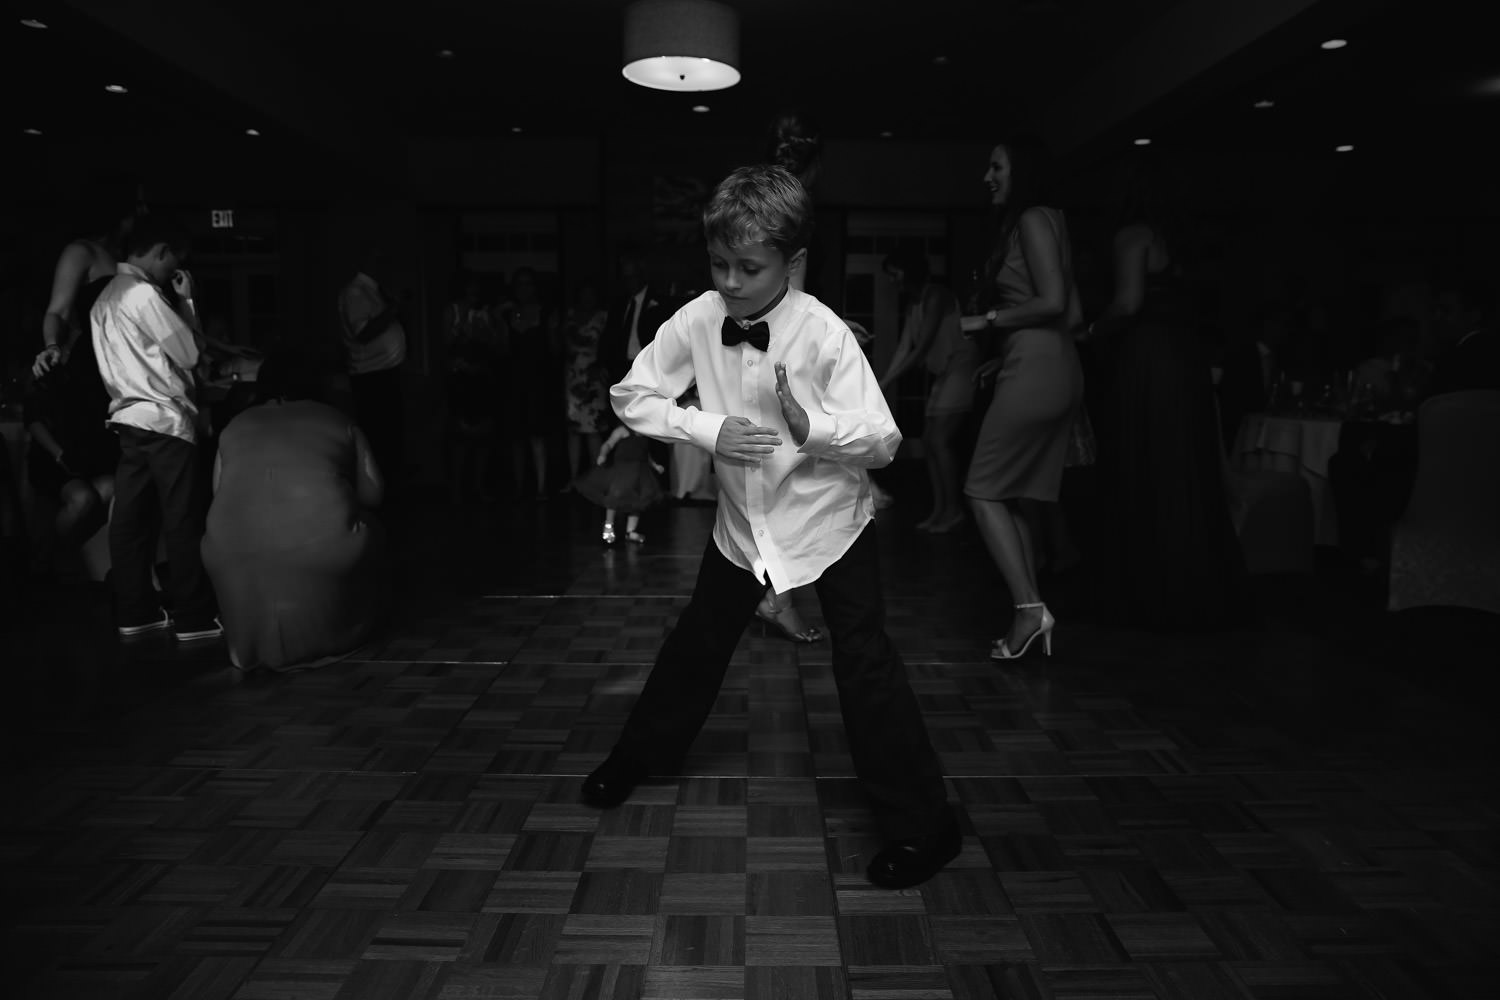 dance moves at a wedding